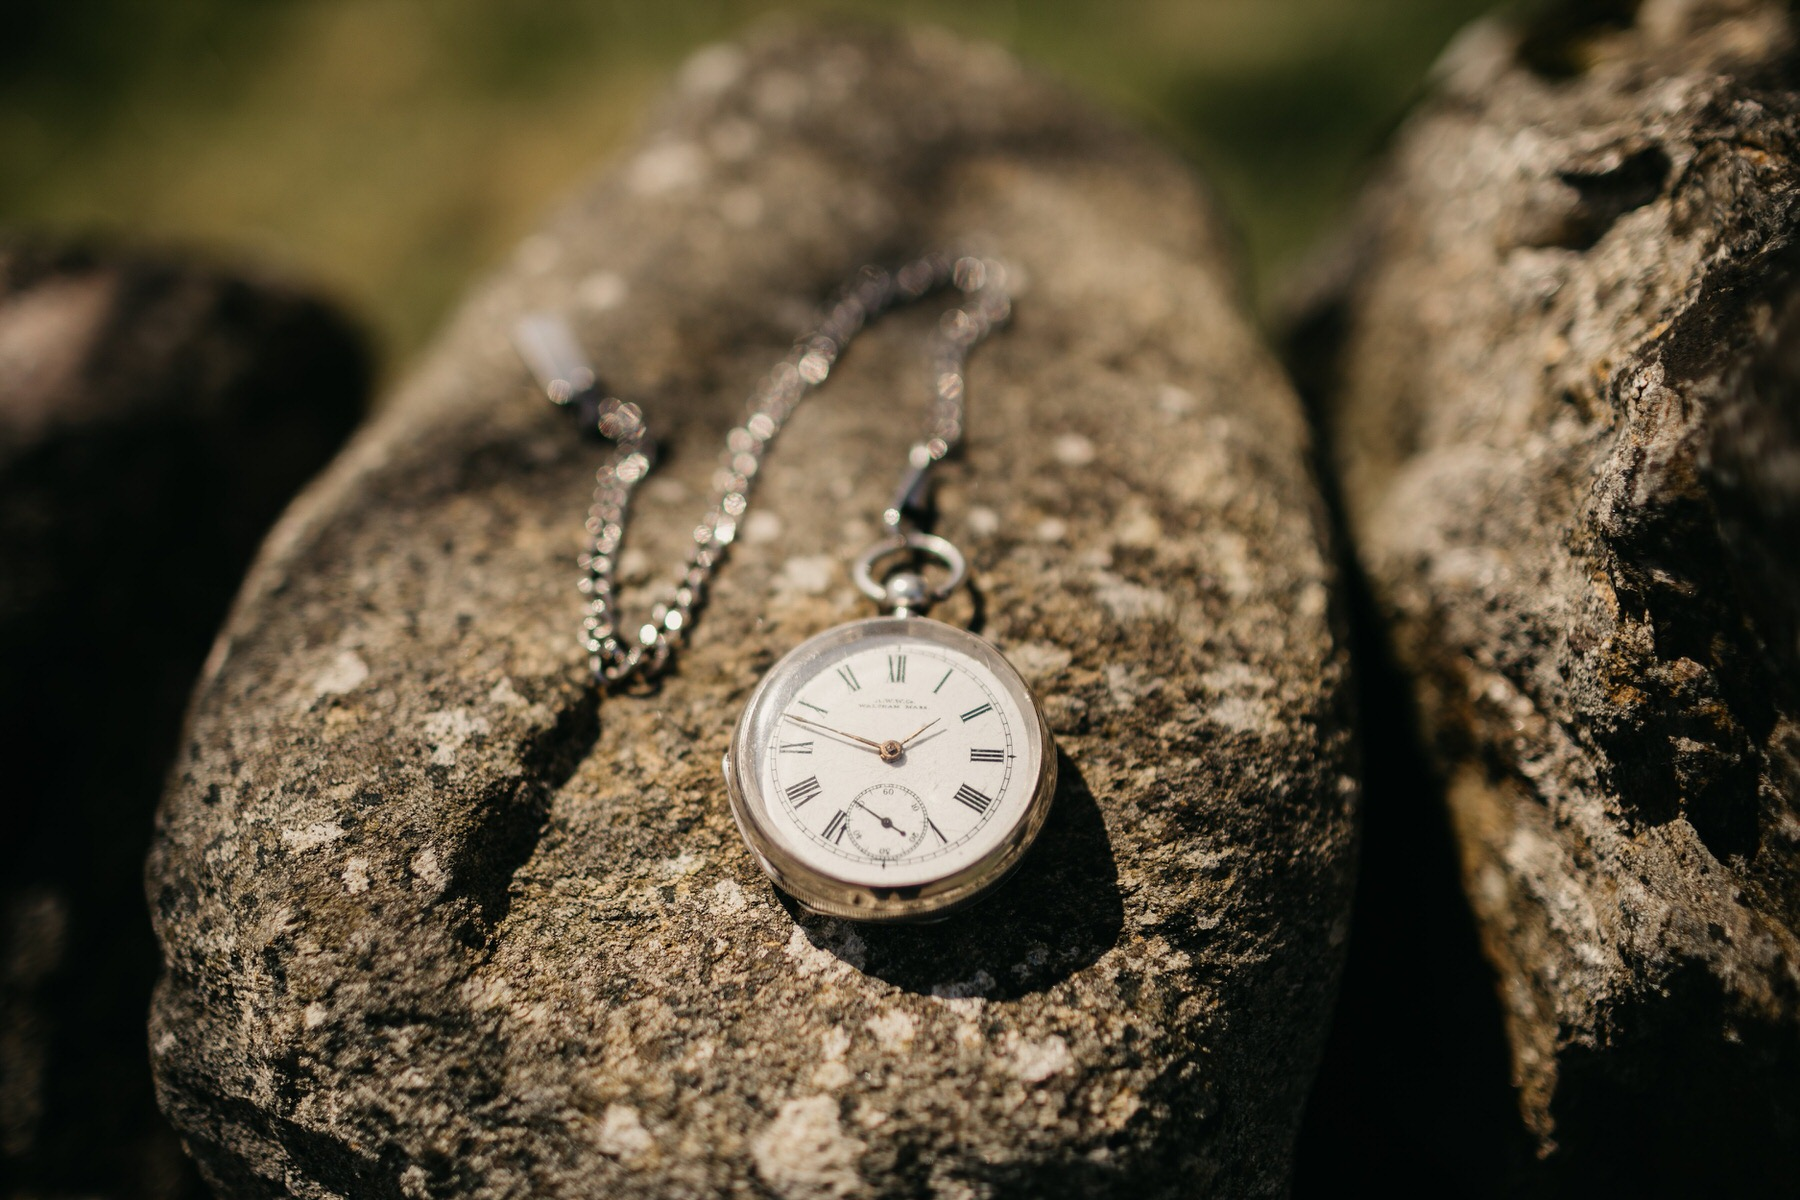 A pocket watch on a rock